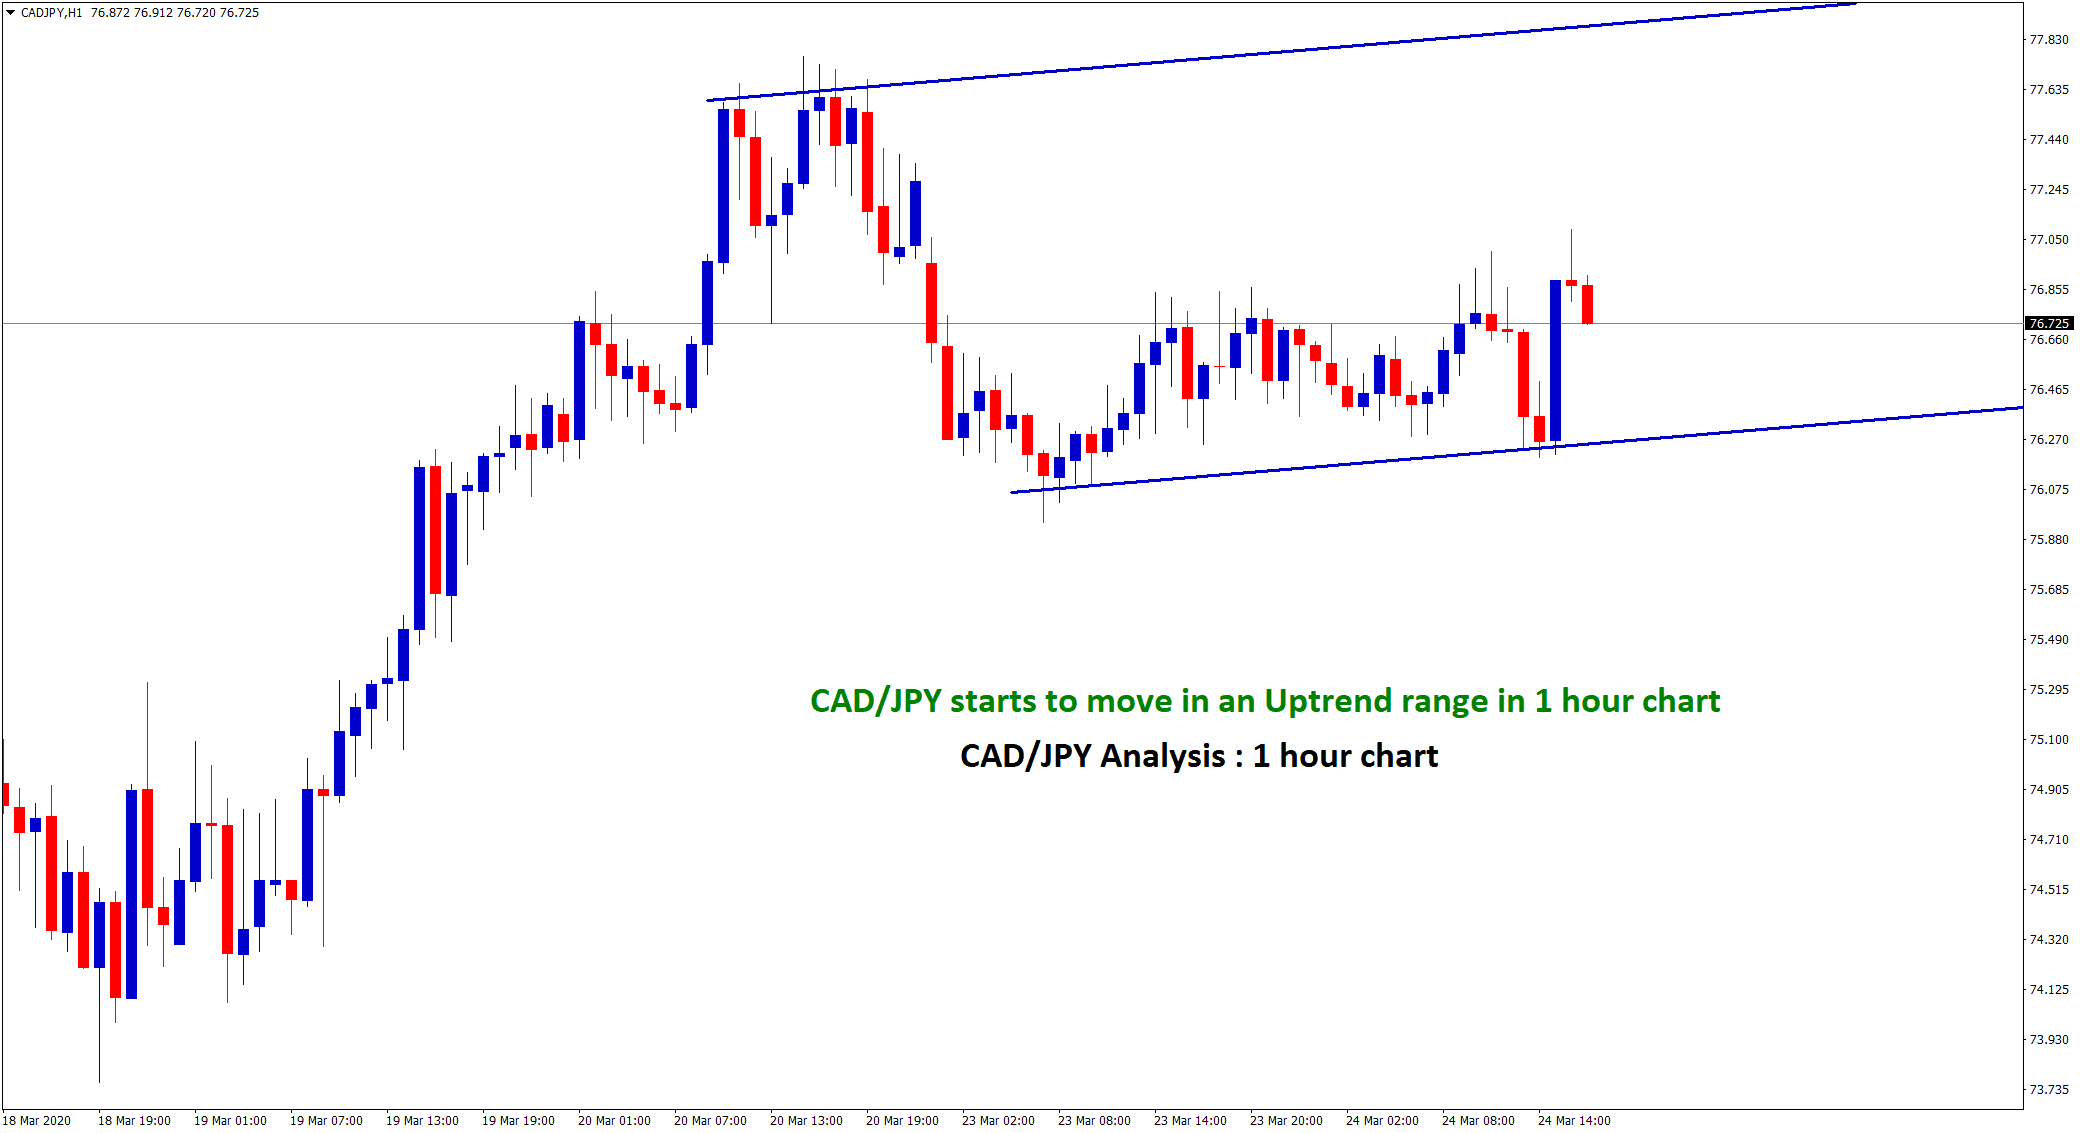 Ranging trend started in CADJPY 1 hour chart